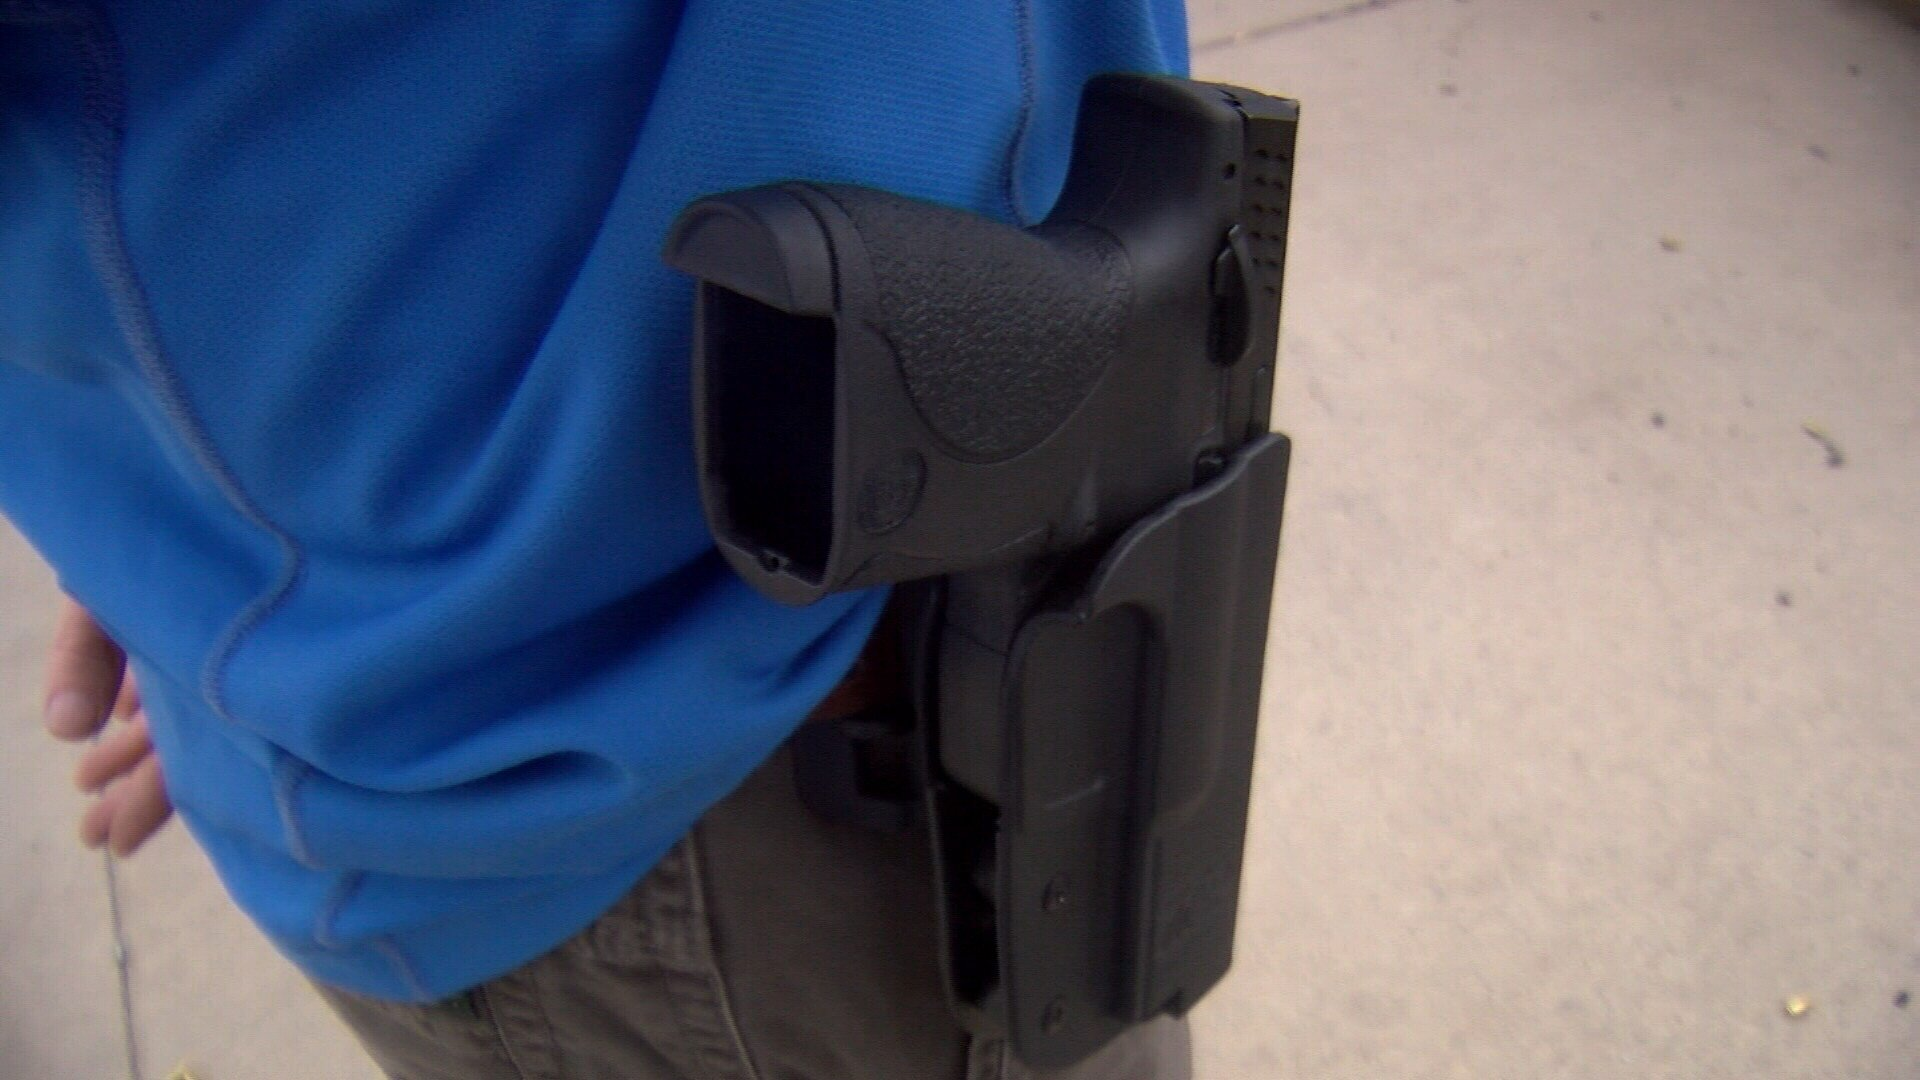 The Faculty/Administrator Safety Training and Emergency Response (FASTER) training teaches shooting techniques and emergency medical training for treat gunshot wounds